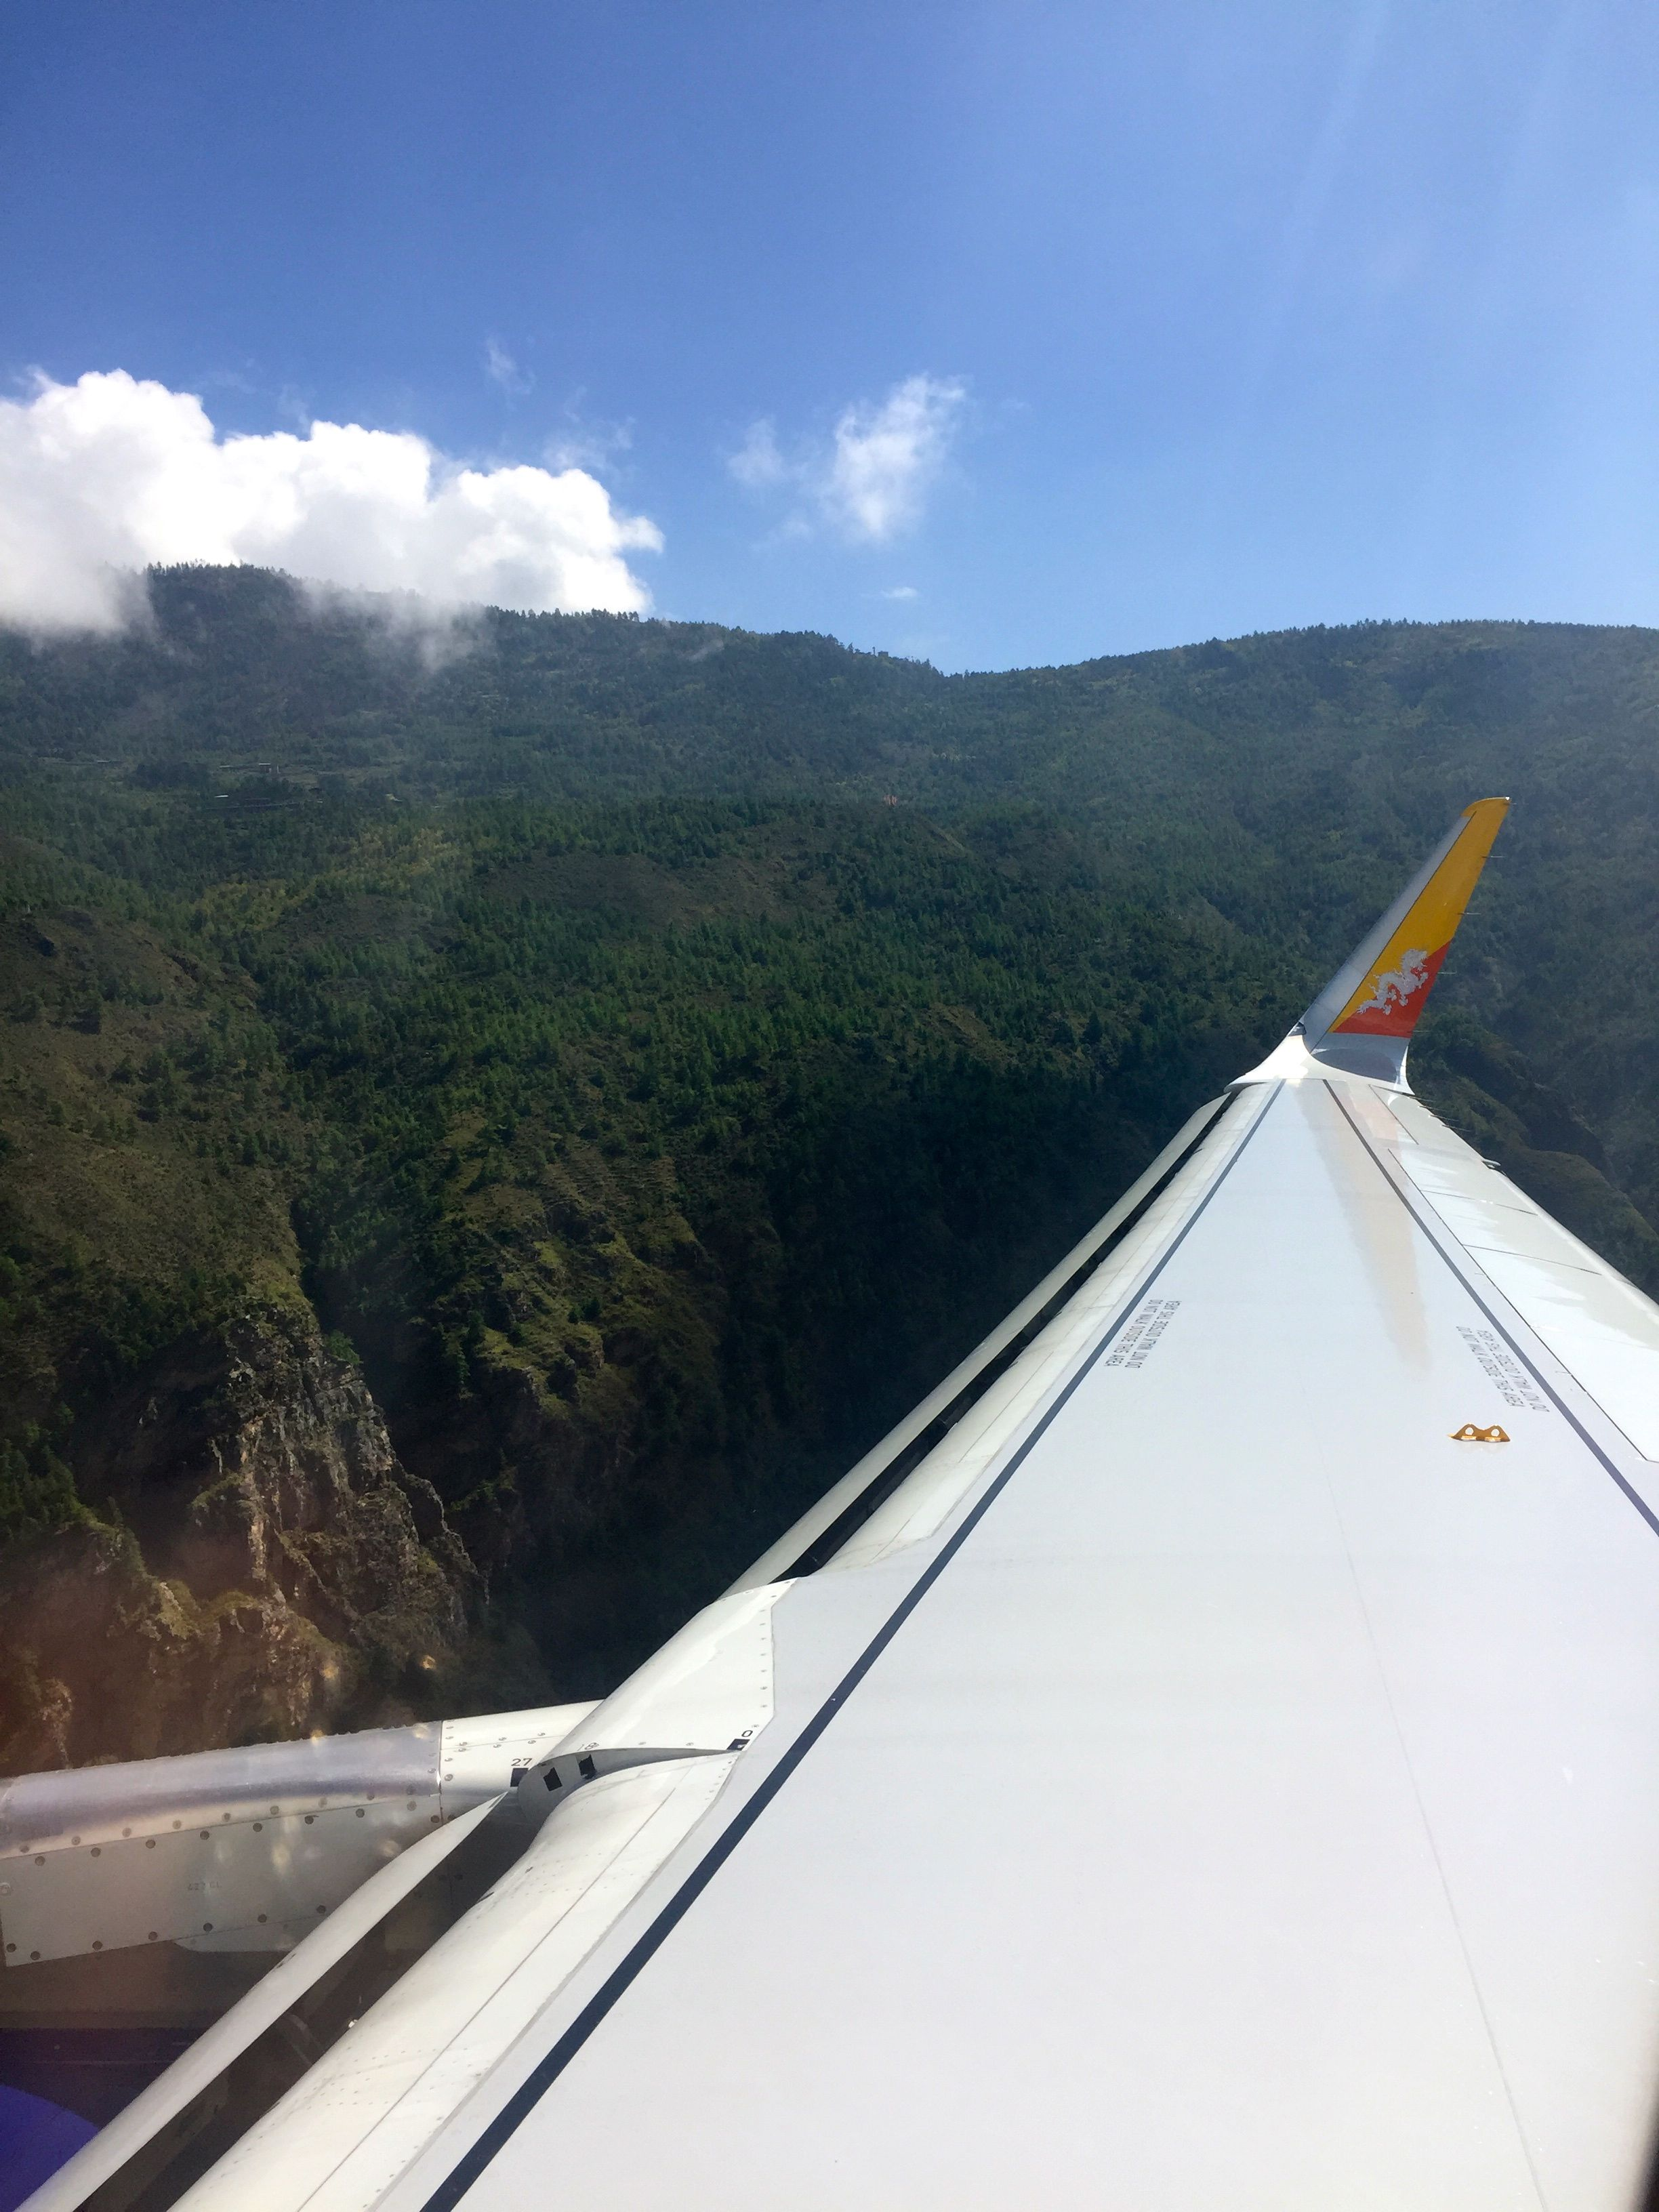 Beginning our descent into Paro International Airport, through the peaks of the Himalayas.